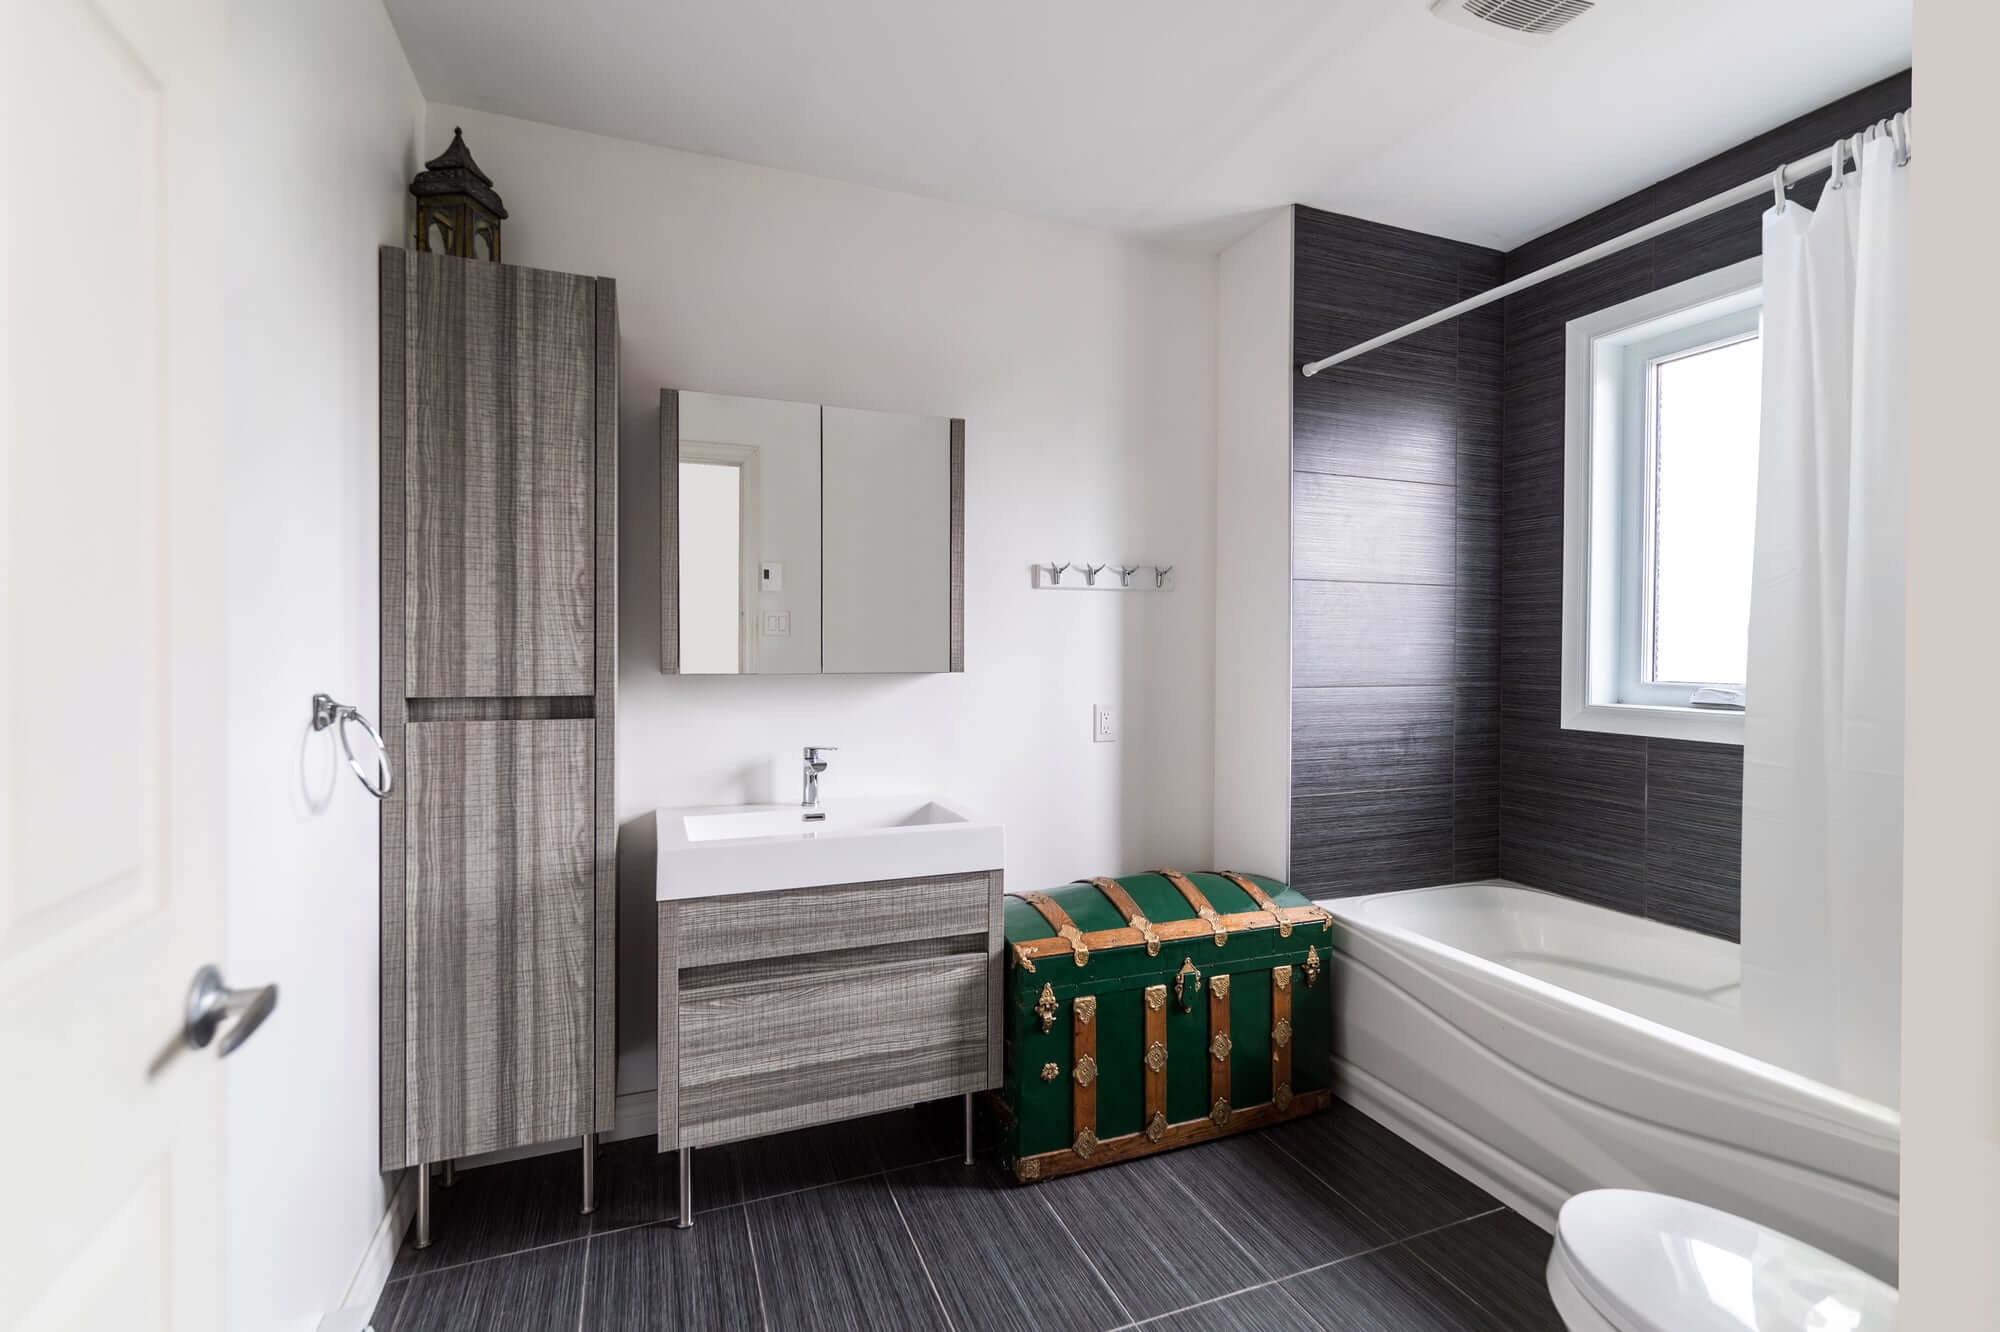 A modern bathroom with grey ceramic tiles, white walls, a shower bath and a freestanding vanity